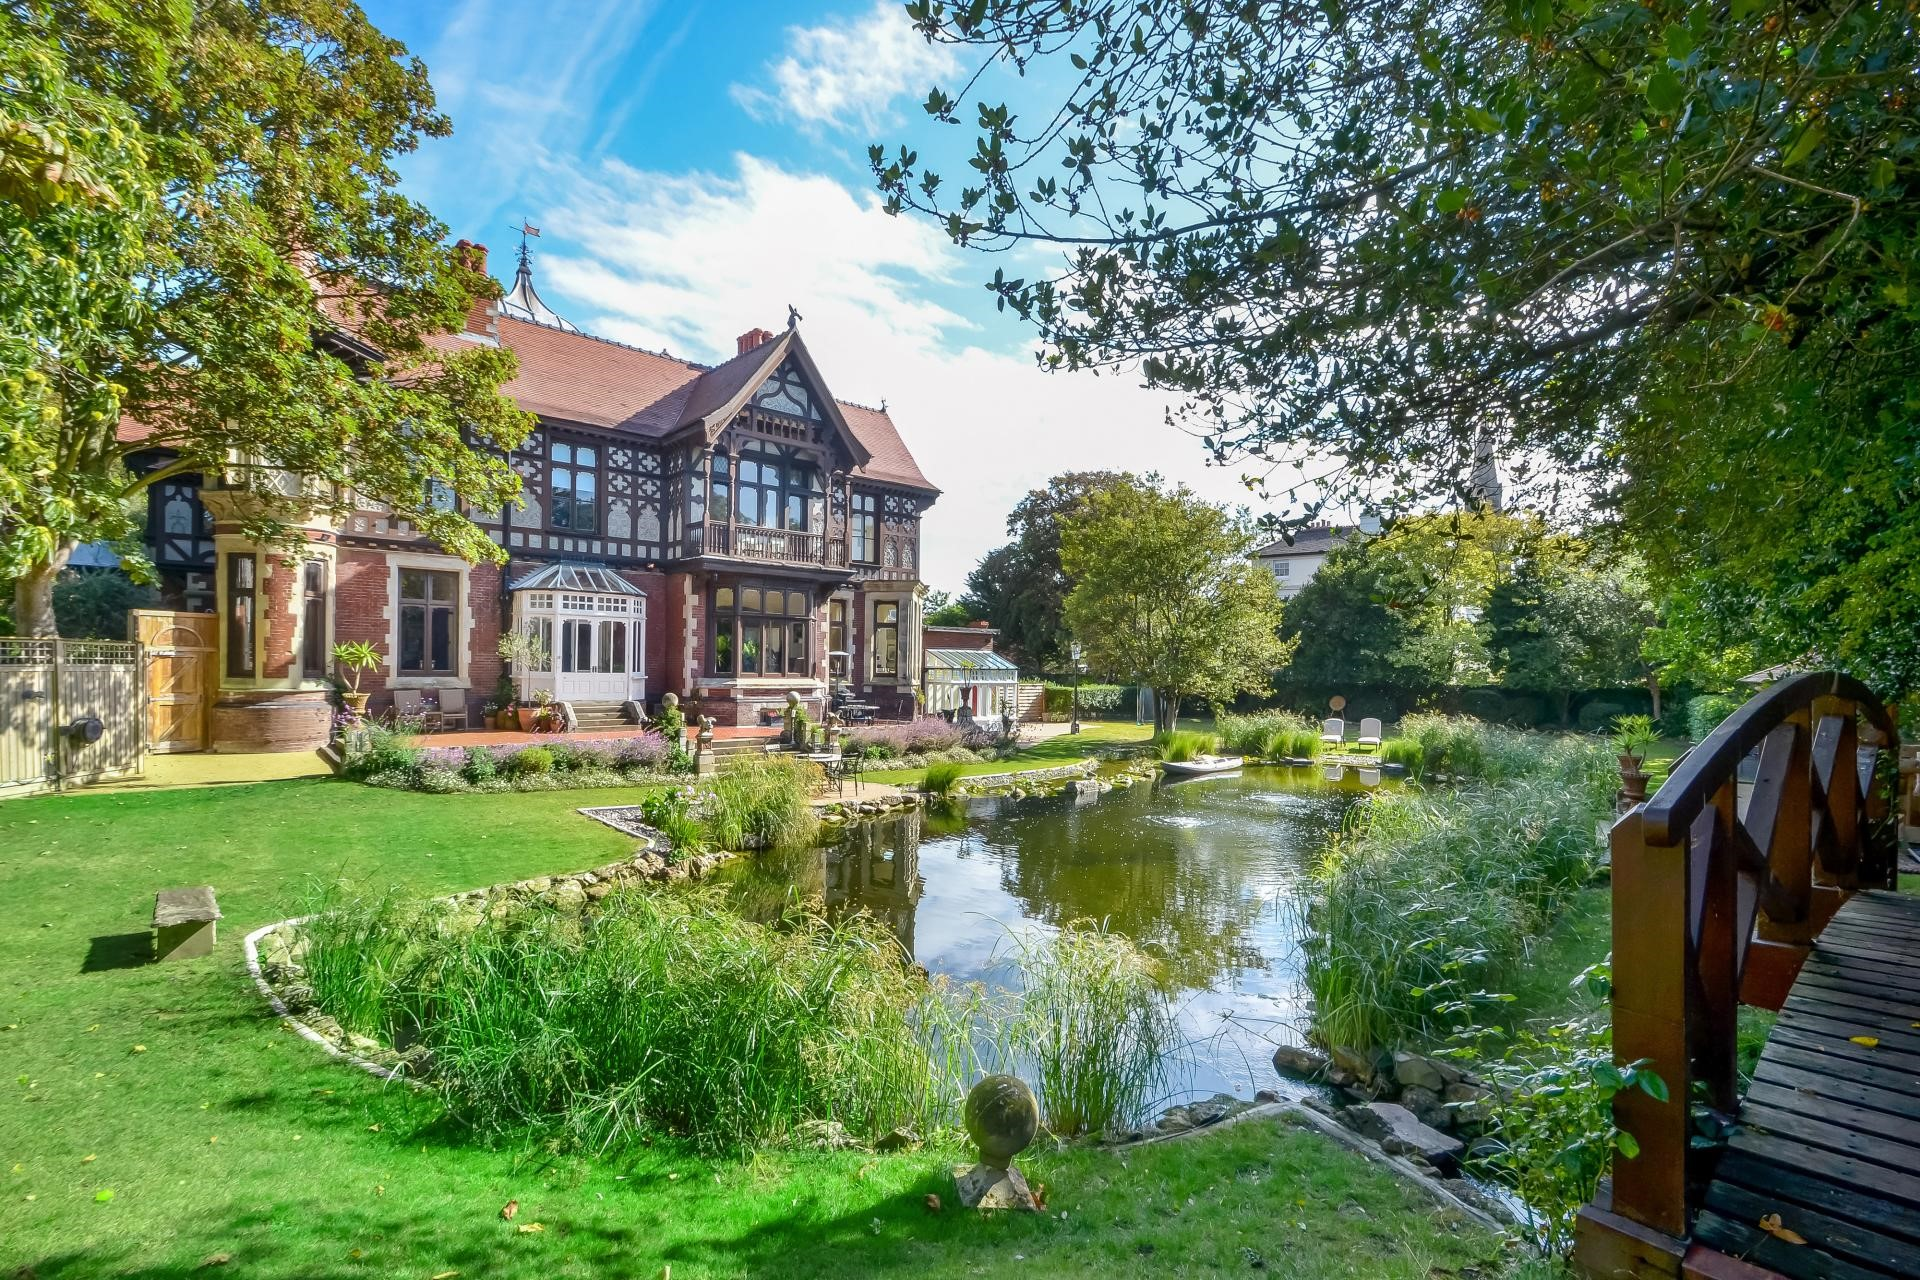 Old Police House fresh water swimming lake period English home